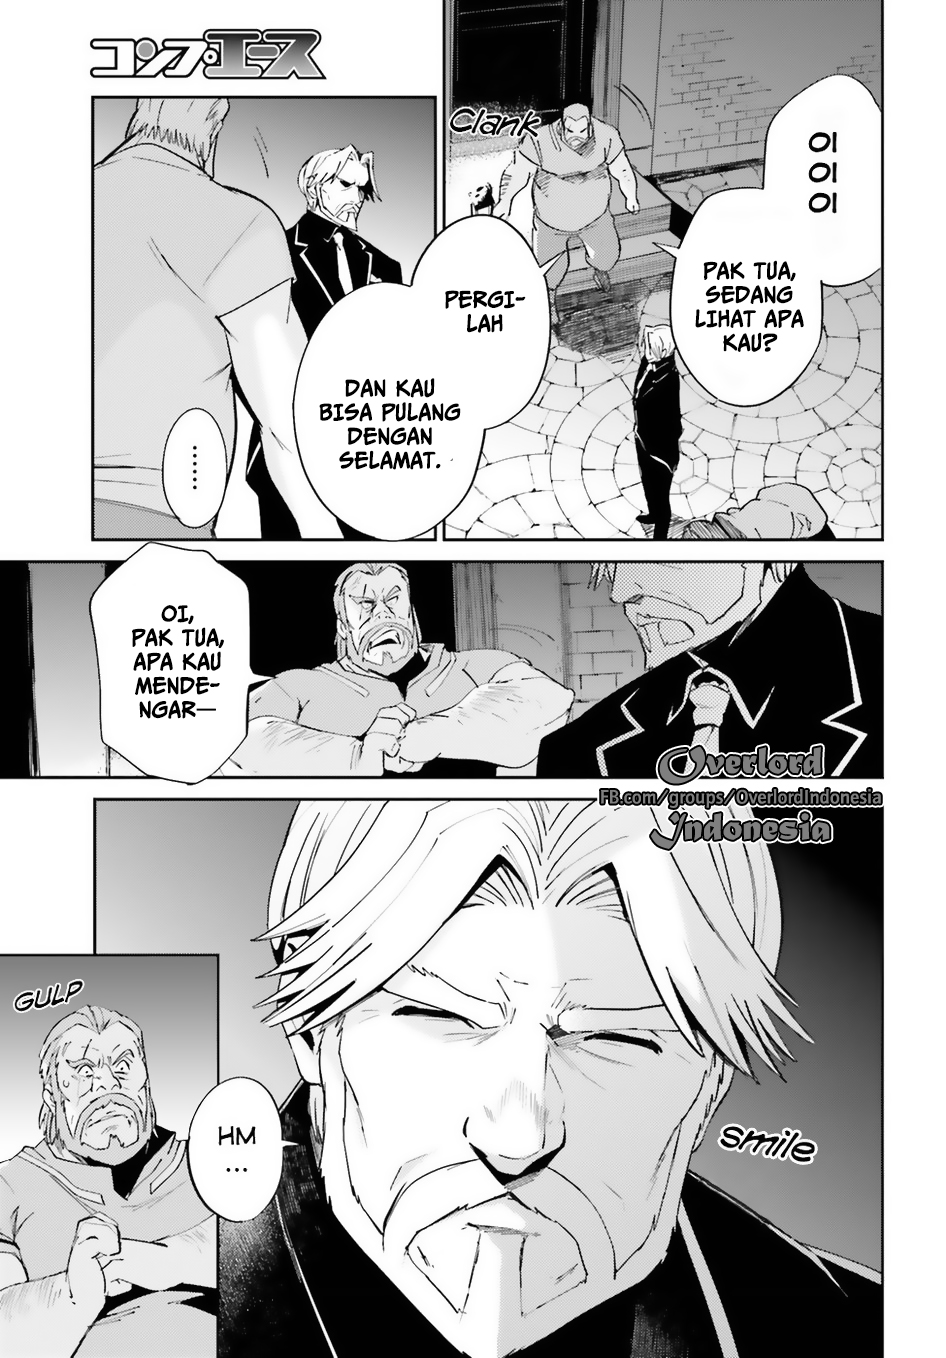 Overlord chapter 32 Bahasa Indonesia